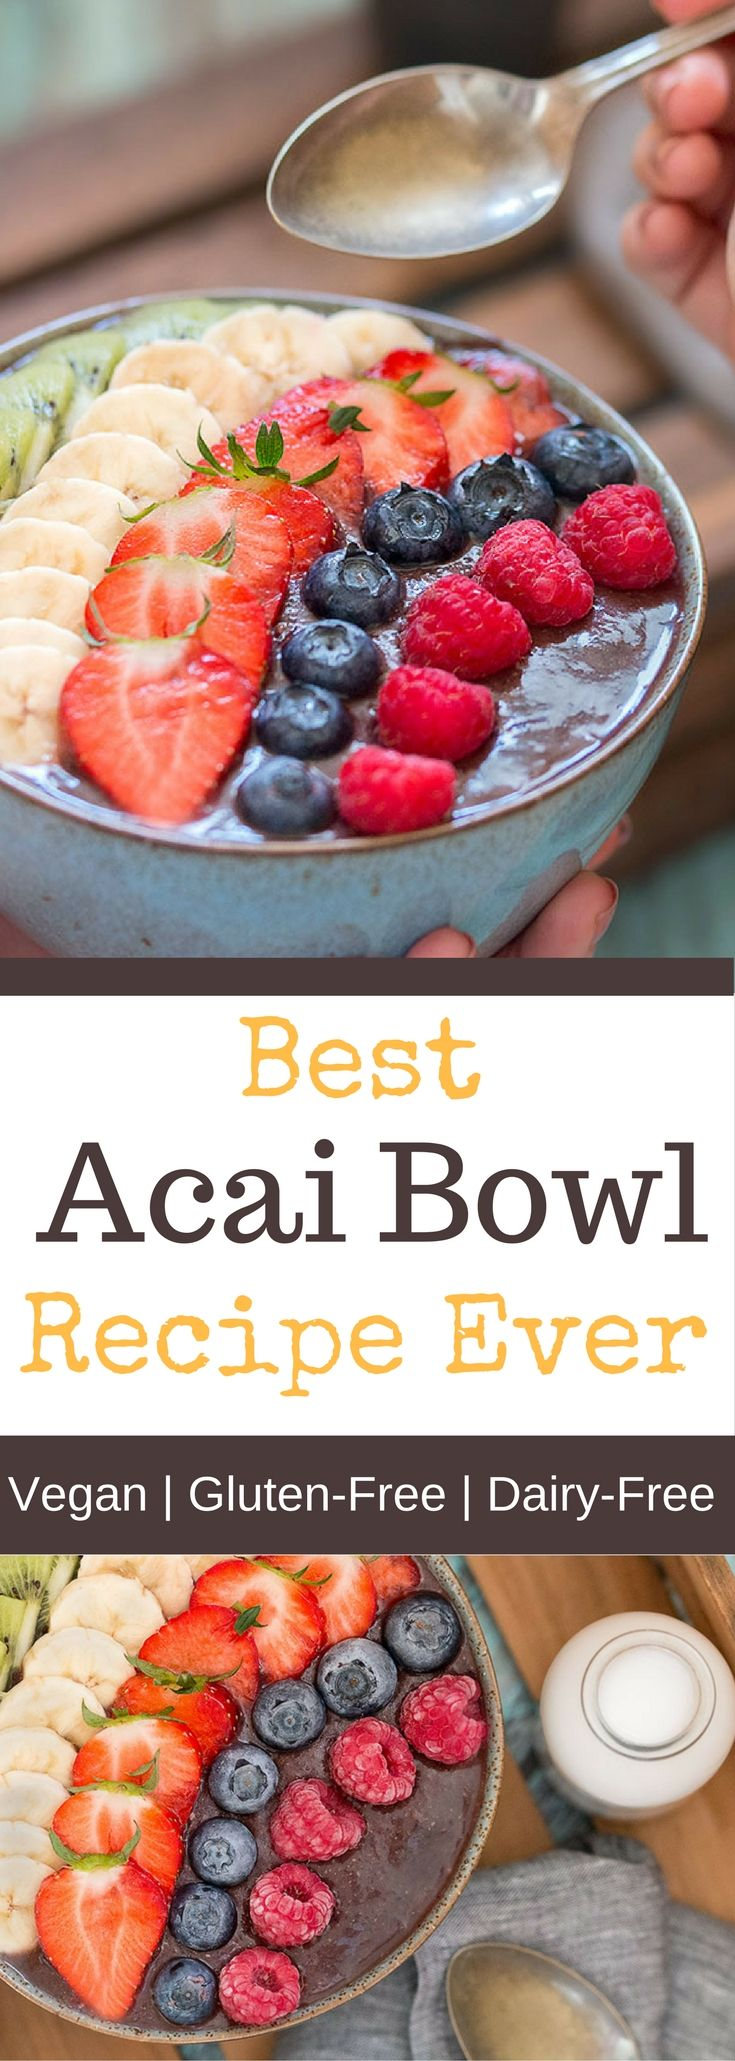 Best Acai Bowl Recipe EverThis delicious acai bowl is the perfect way to start your day. It will provide you with clean energy for the day and is so easy to make. Best of all it's vegan, gluten-free and refined sugar-free.